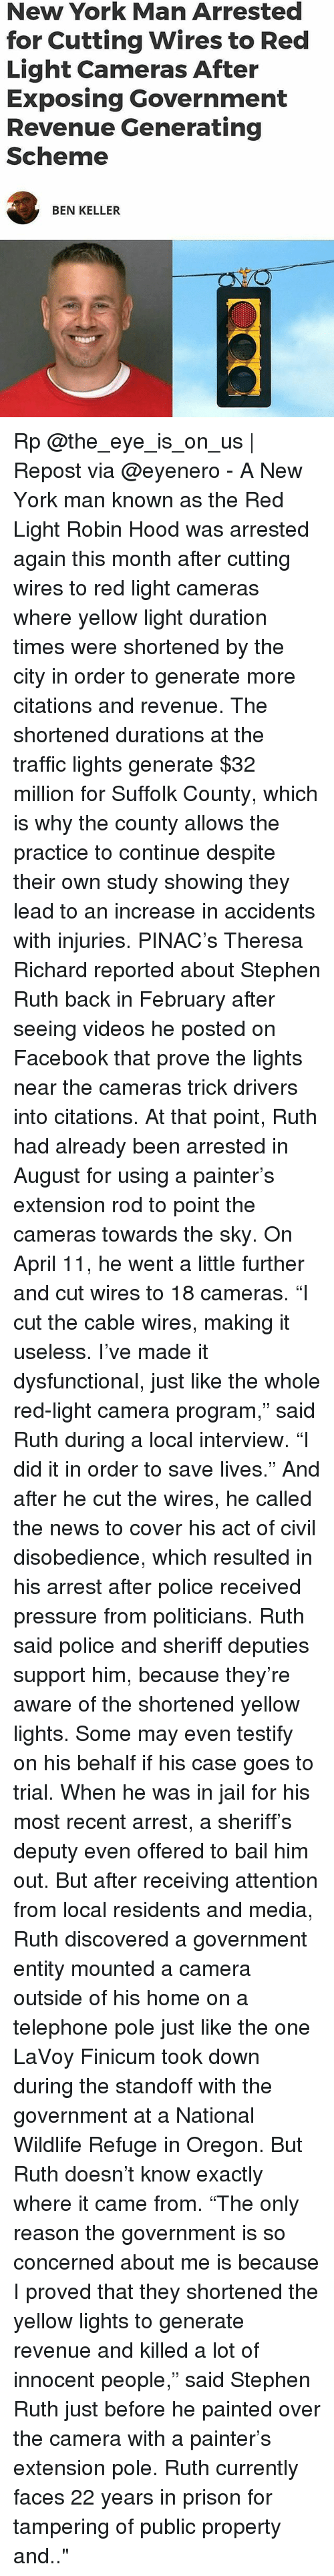 """Facebook, Jail, and Memes: New York Man Arrested  for Cutting Wires to Red  Light Cameras After  Exposing Government  Revenue Generating  Scheme  BEN KELLER Rp @the_eye_is_on_us 